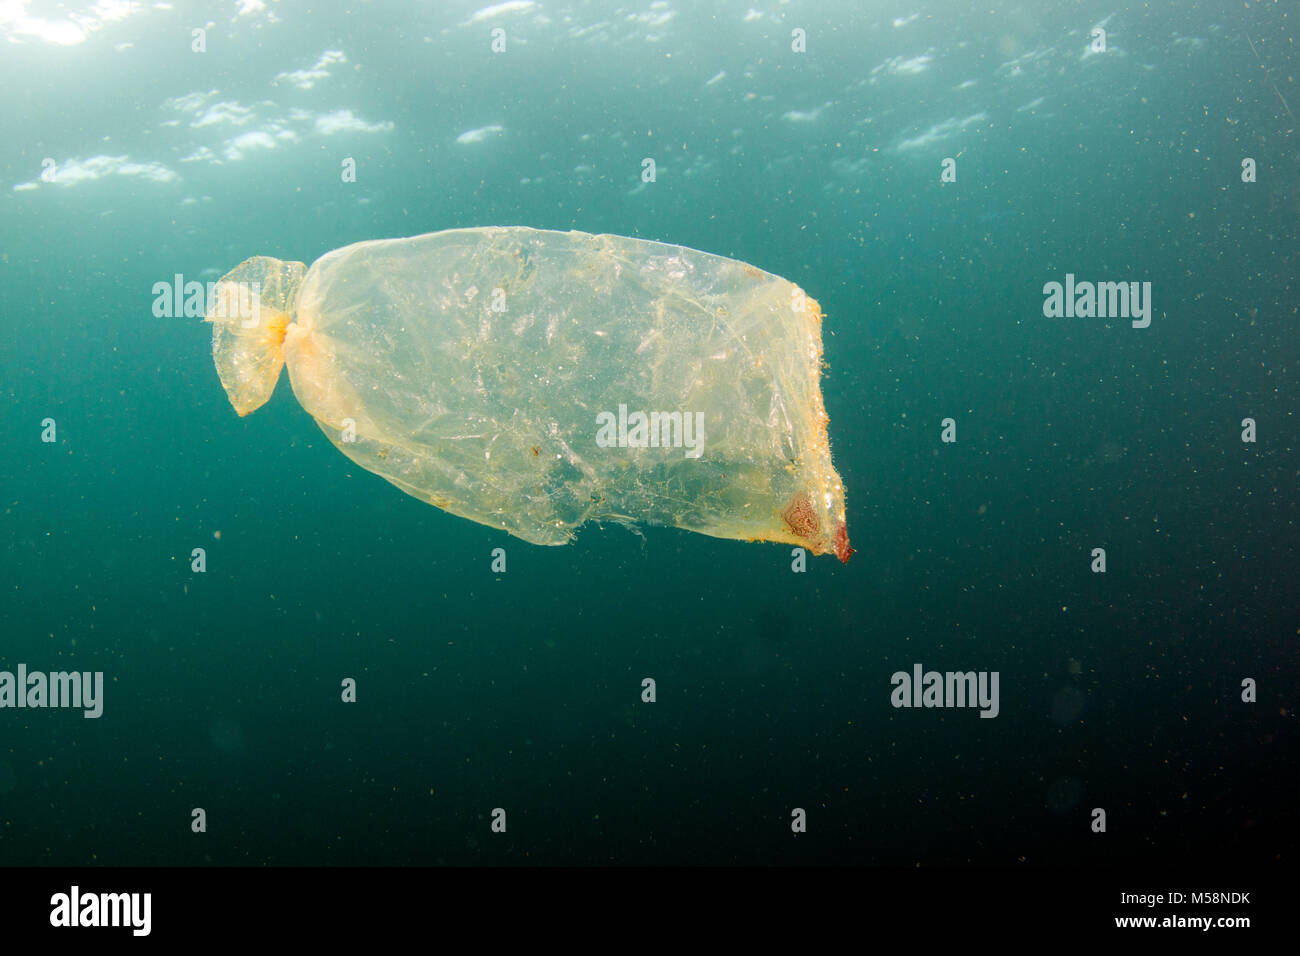 Currents accumulate marine debris in areas around the global ocean. - Stock Image